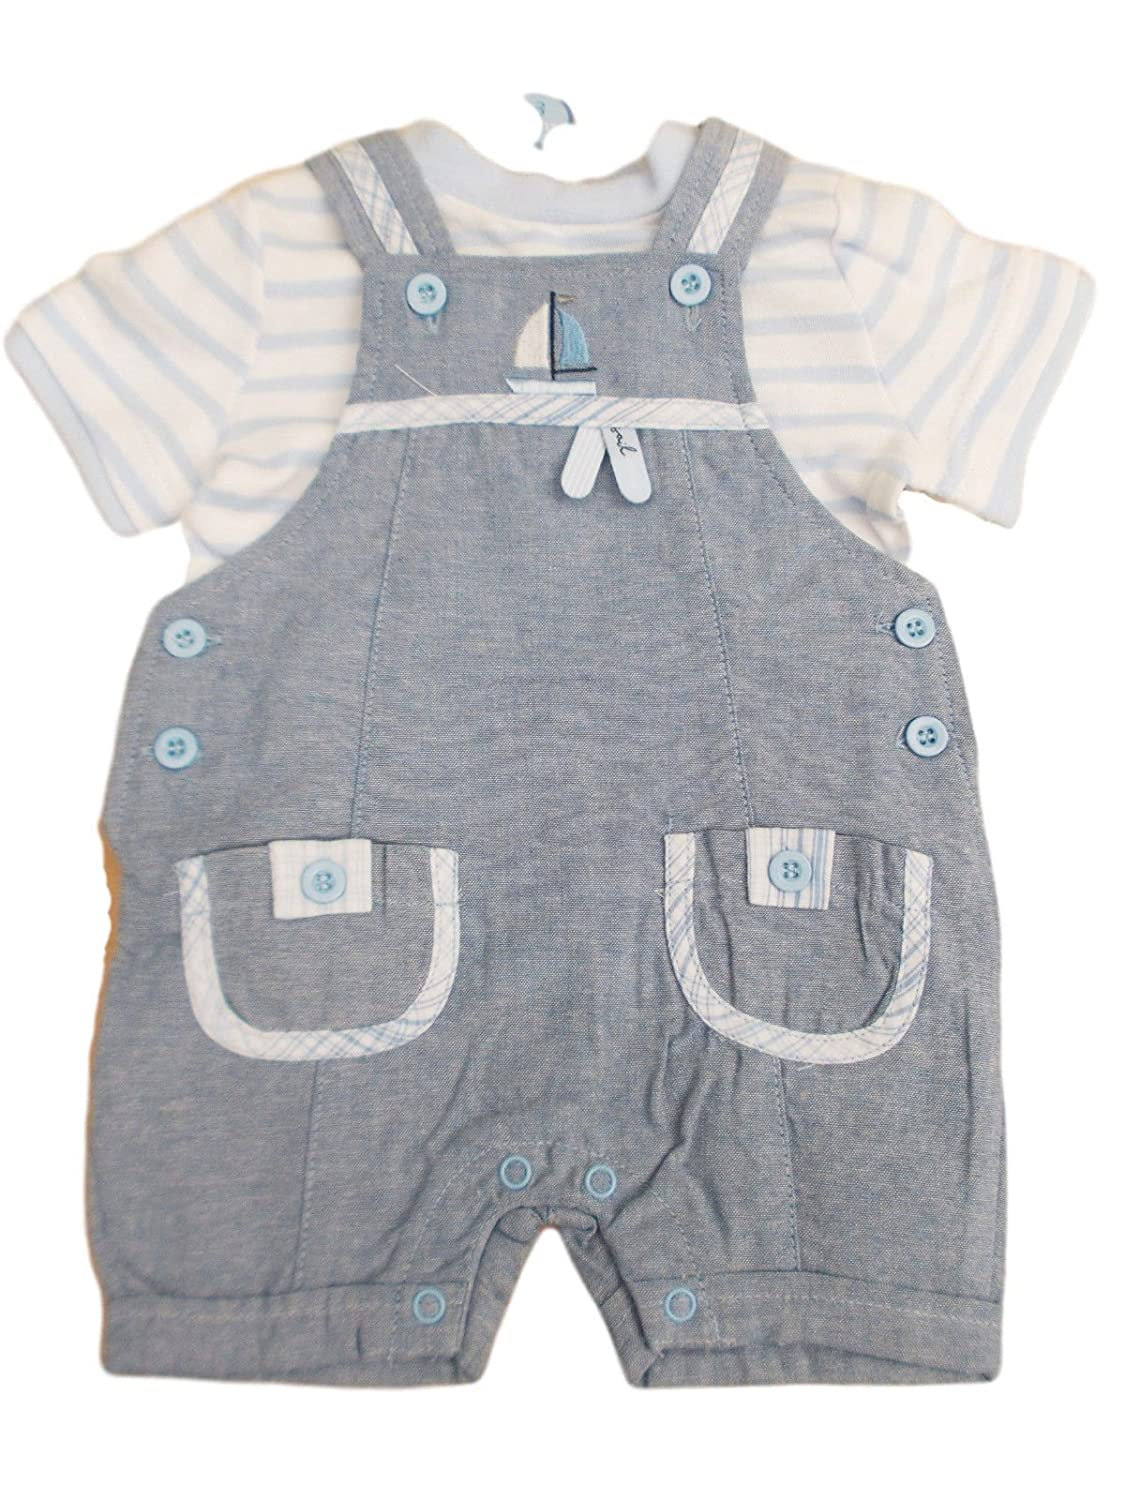 BNWT Baby Boys blue summer sailing ship 2 Piece dungaree & top Set clothes